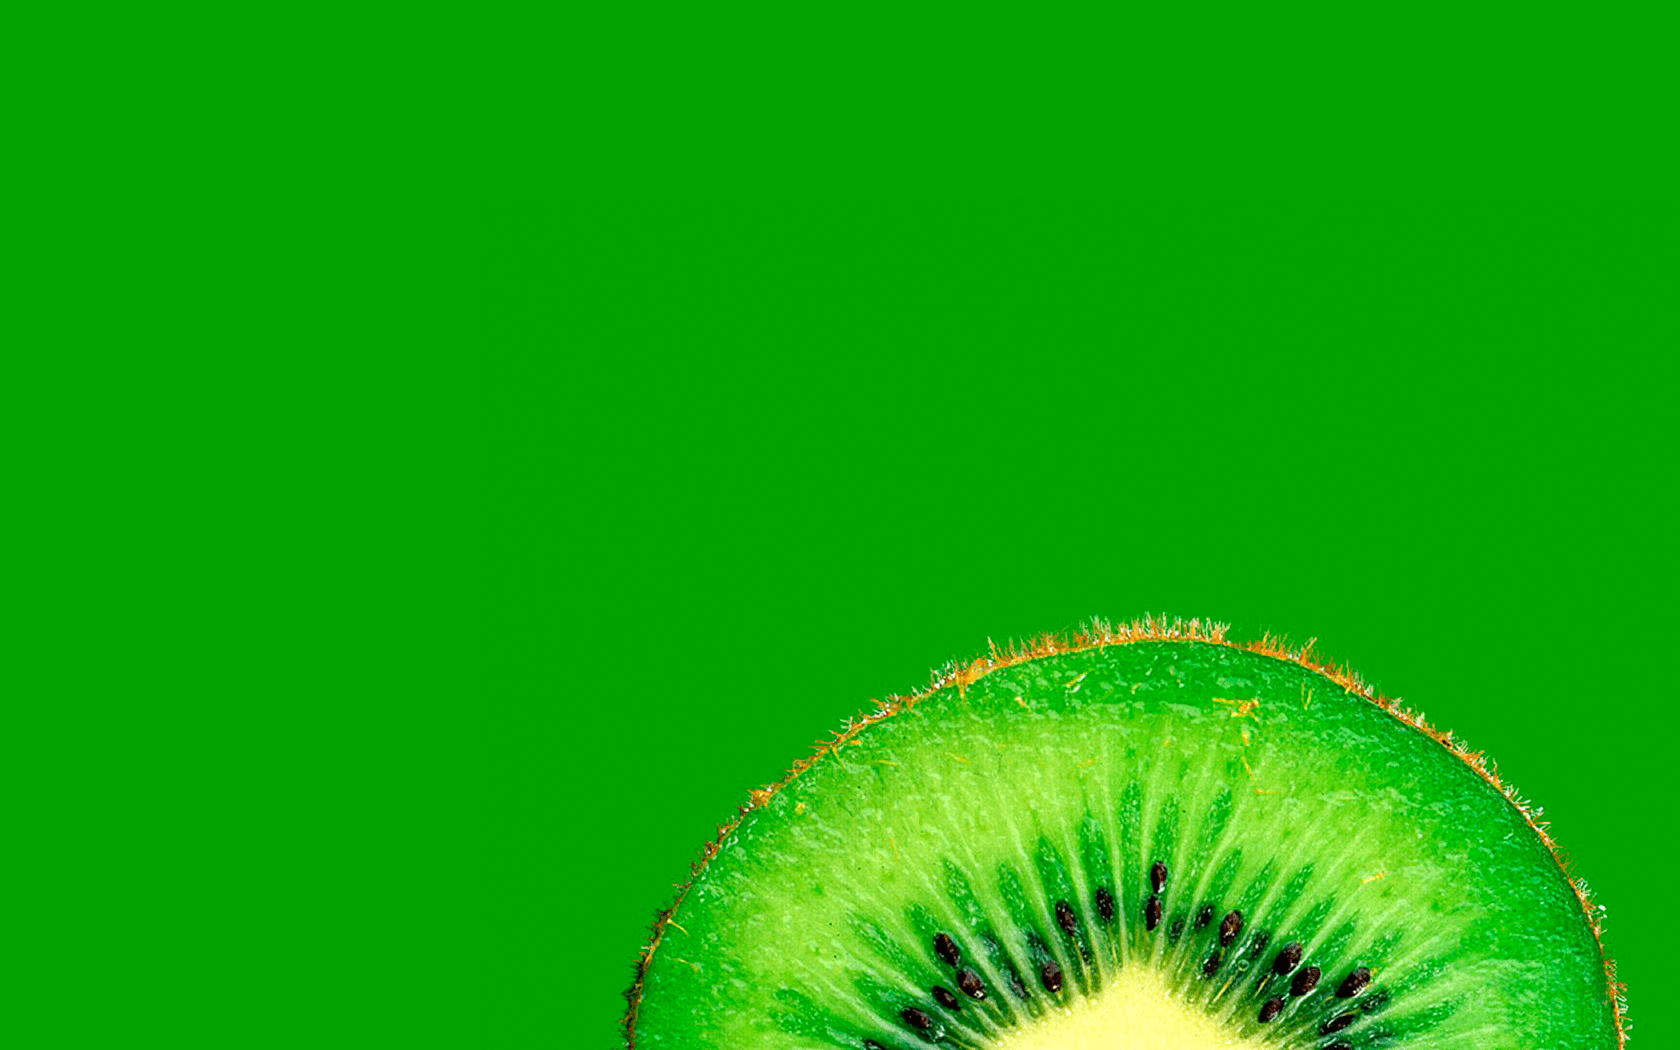 Kiwi Desktop wallpapers